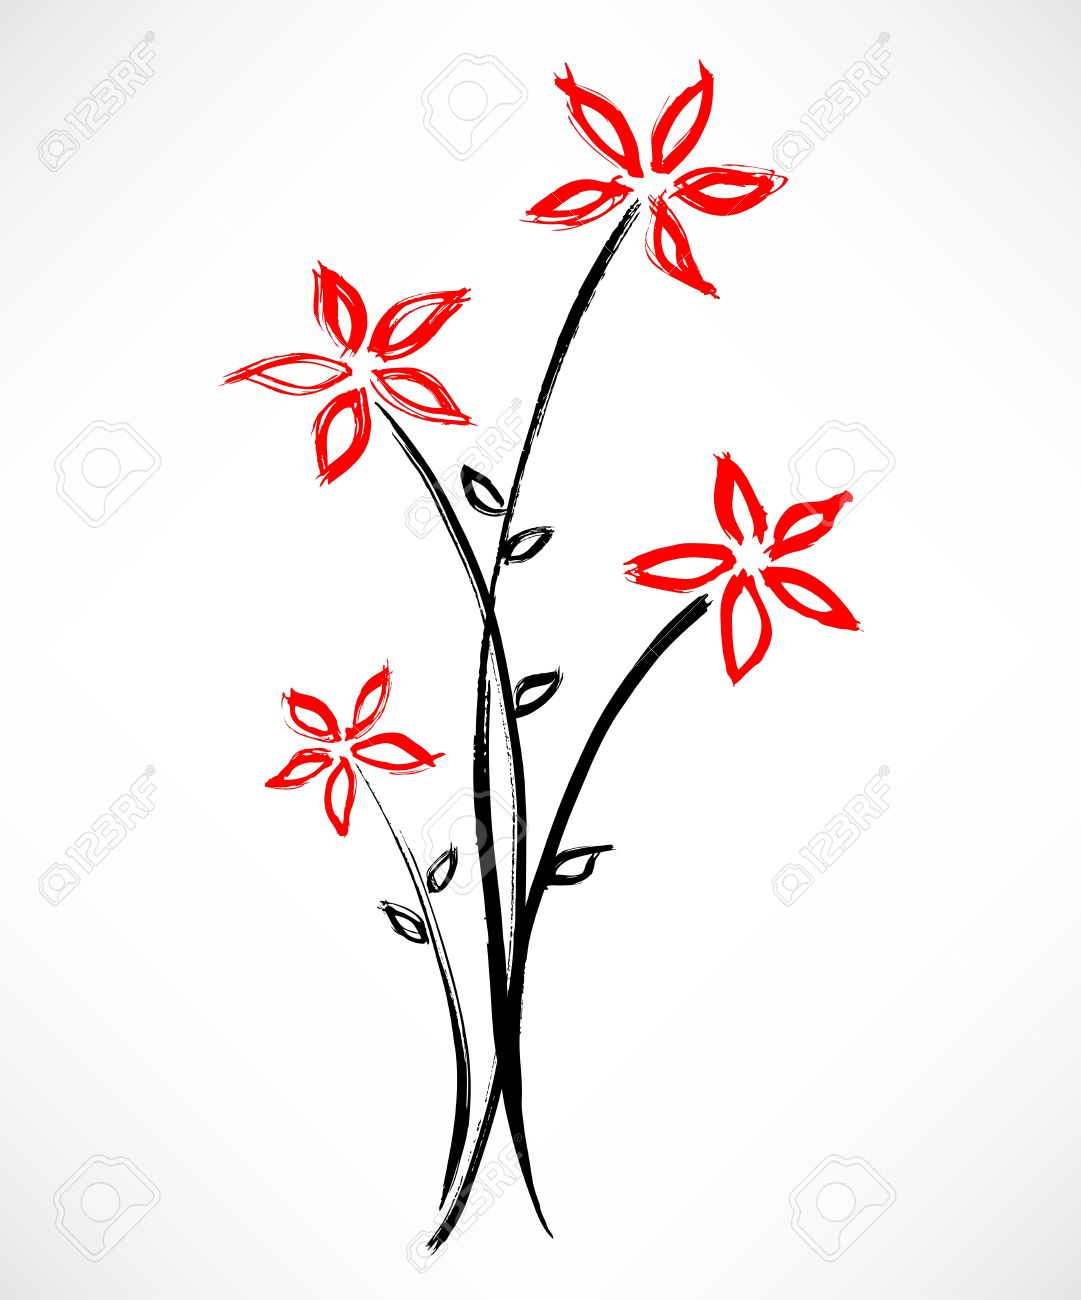 Simple Painting Simple Flower Painting Royalty Free Cliparts Vectors And Stock